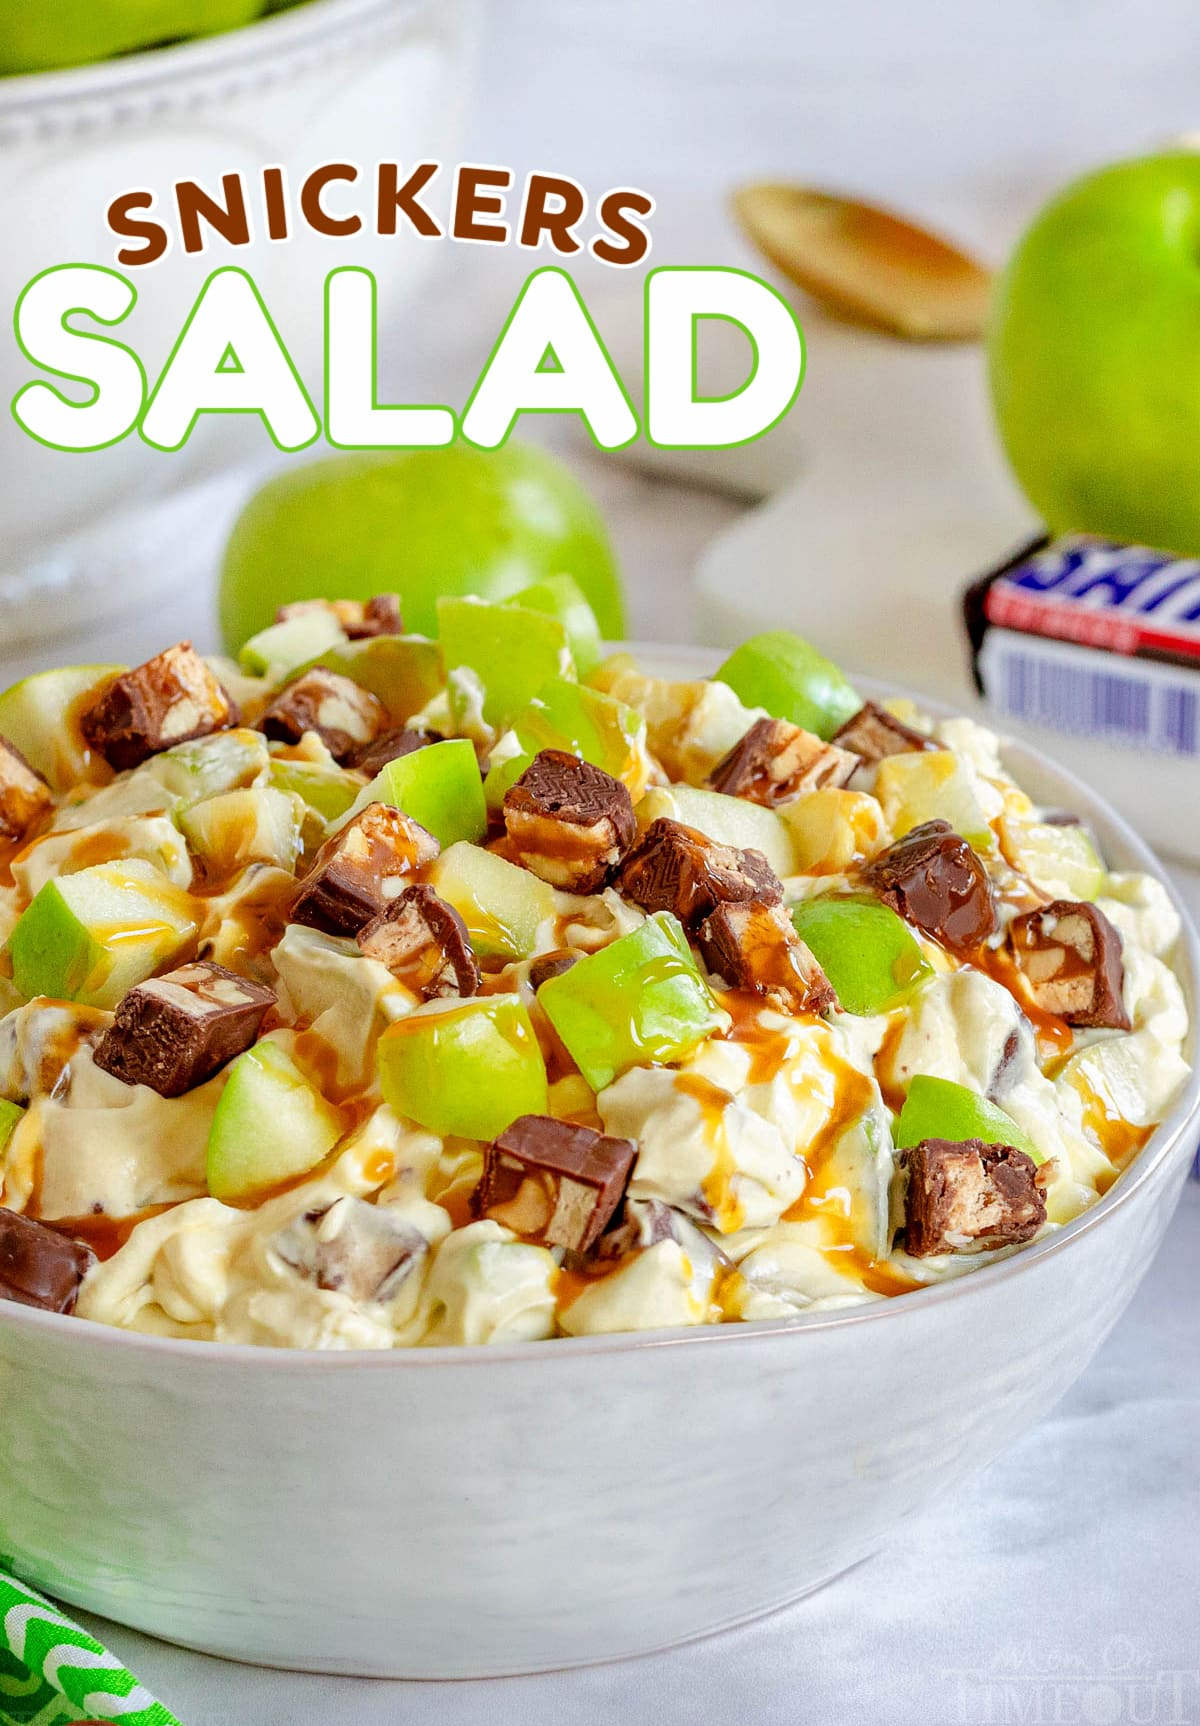 snickers salad in white salad bowl topped with a drizzle of caramel sauce. green apples and snickers candy bar in background. title overlay at top of image.